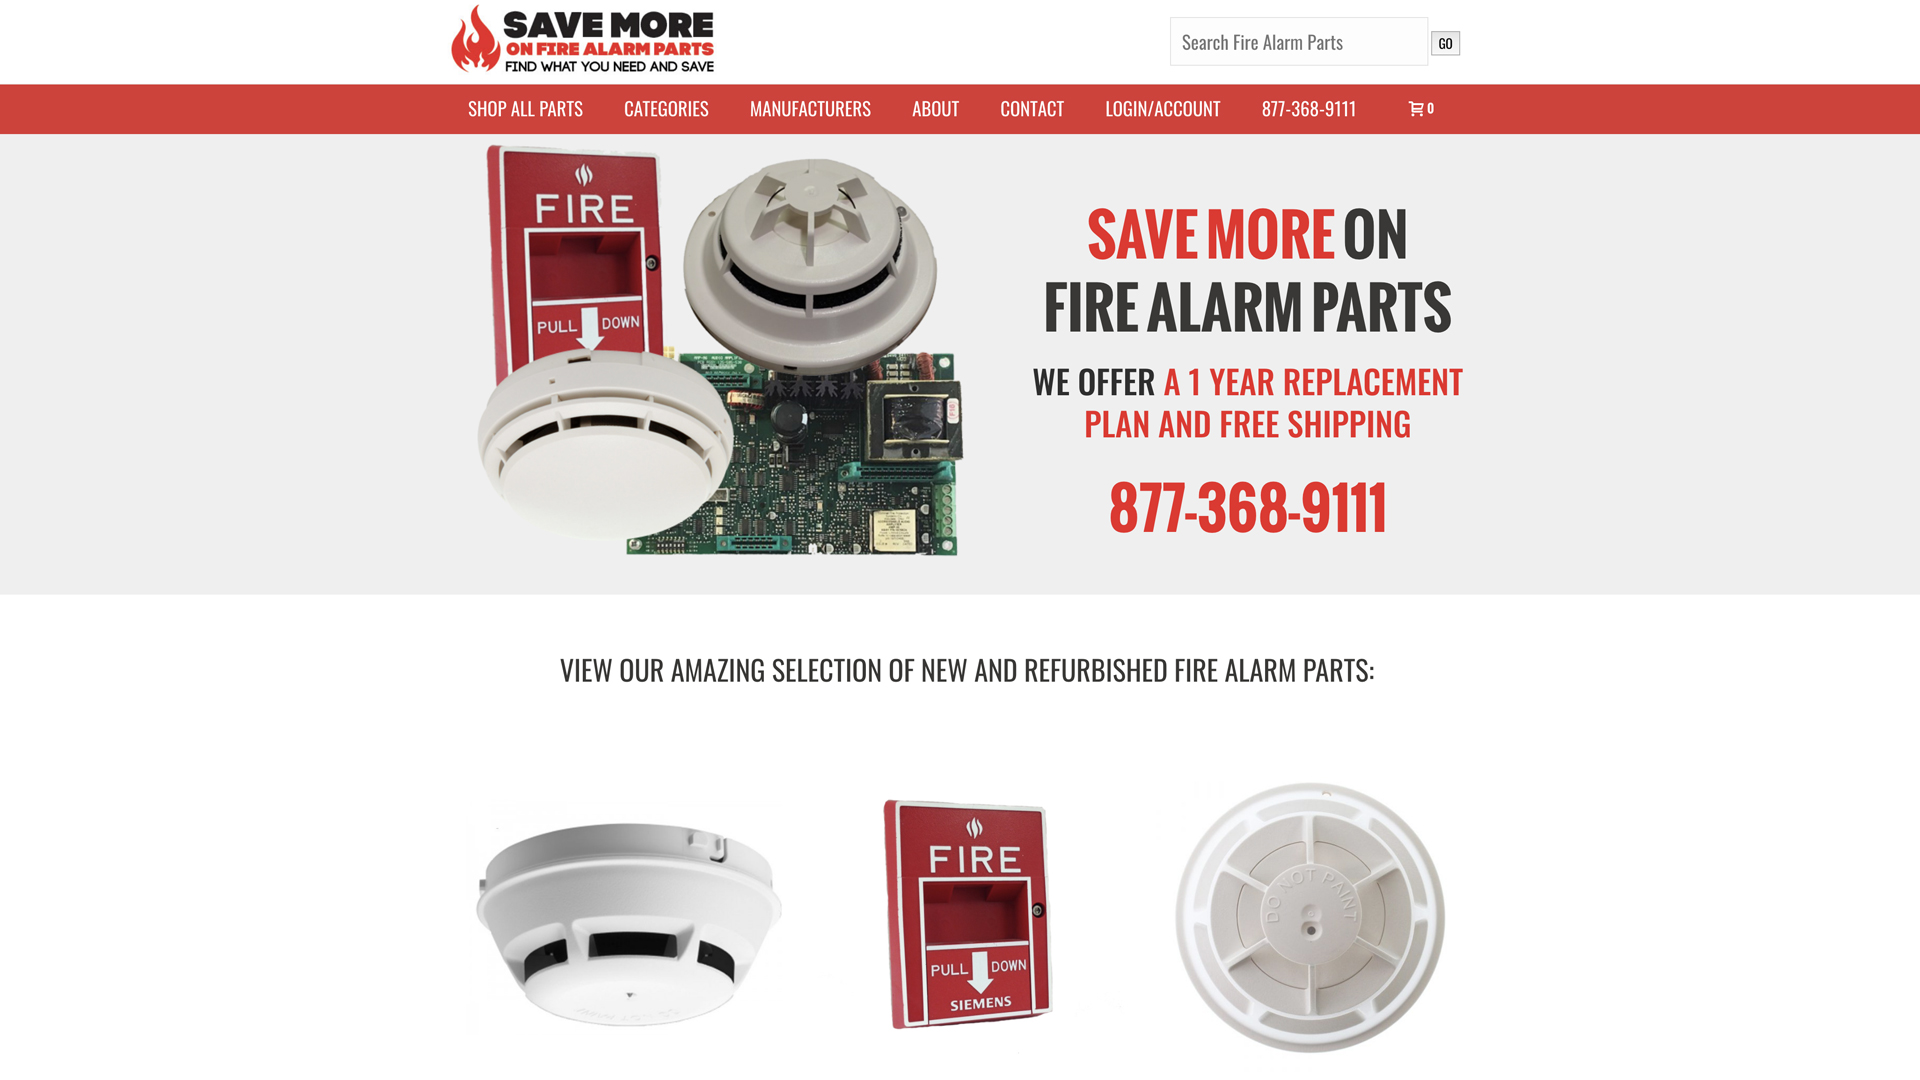 Recent Work: Save More on Fire Alarm Parts